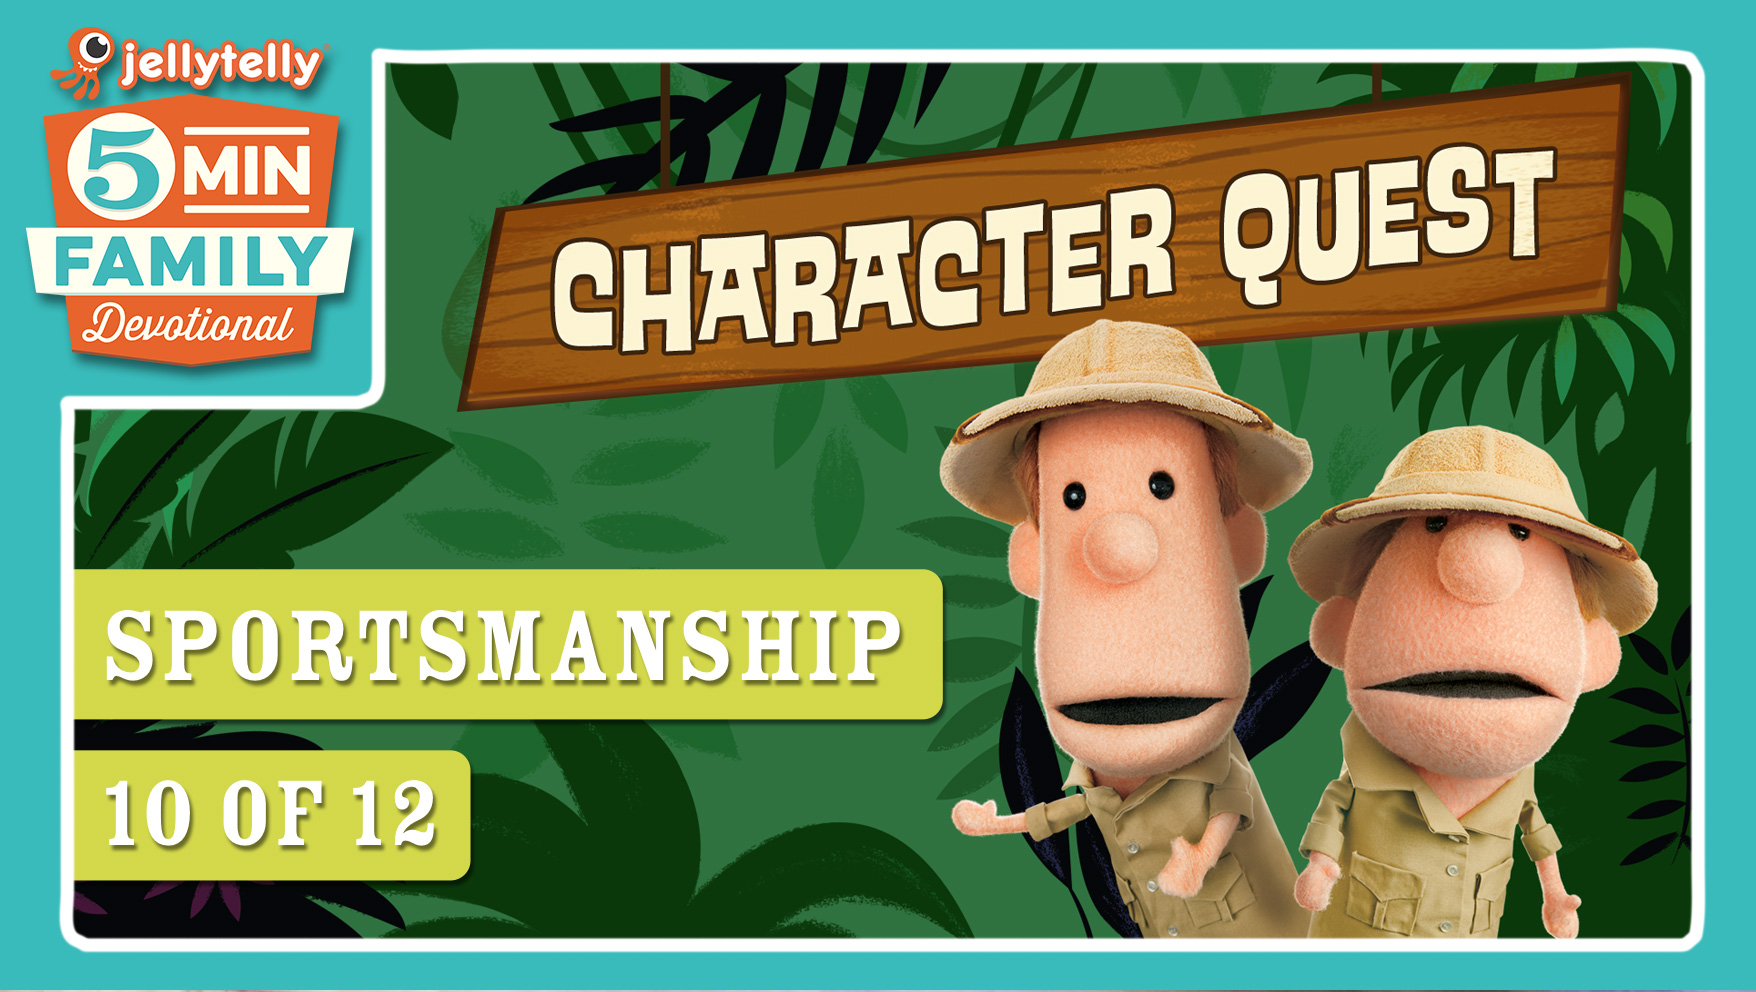 Sportsmanship - Character Quest 5 Minute Family Devotional